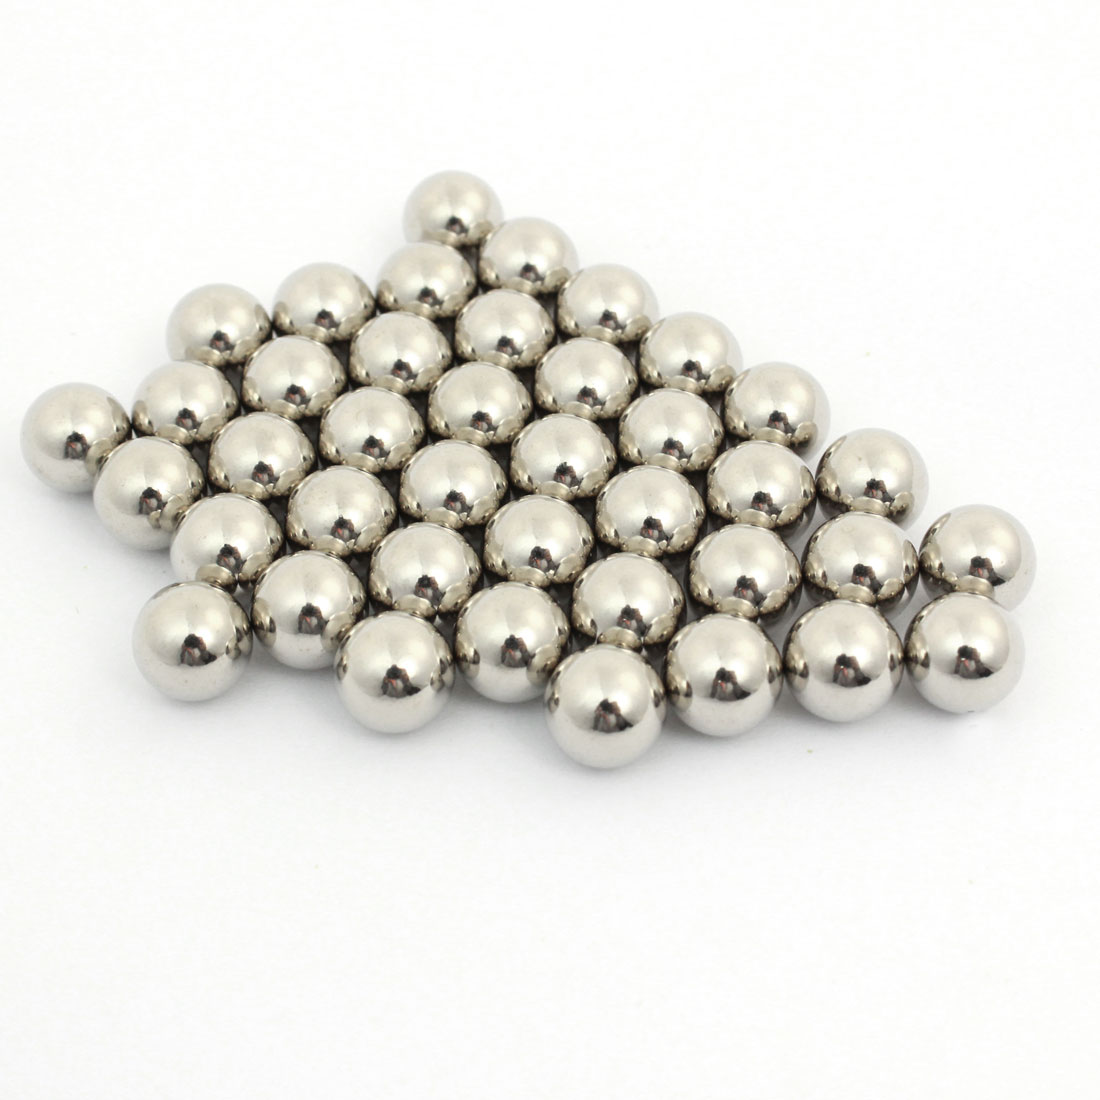 Bicycle Wheel Bearing Steel Balls Spare Parts 9mm Diameter 40 Pcs